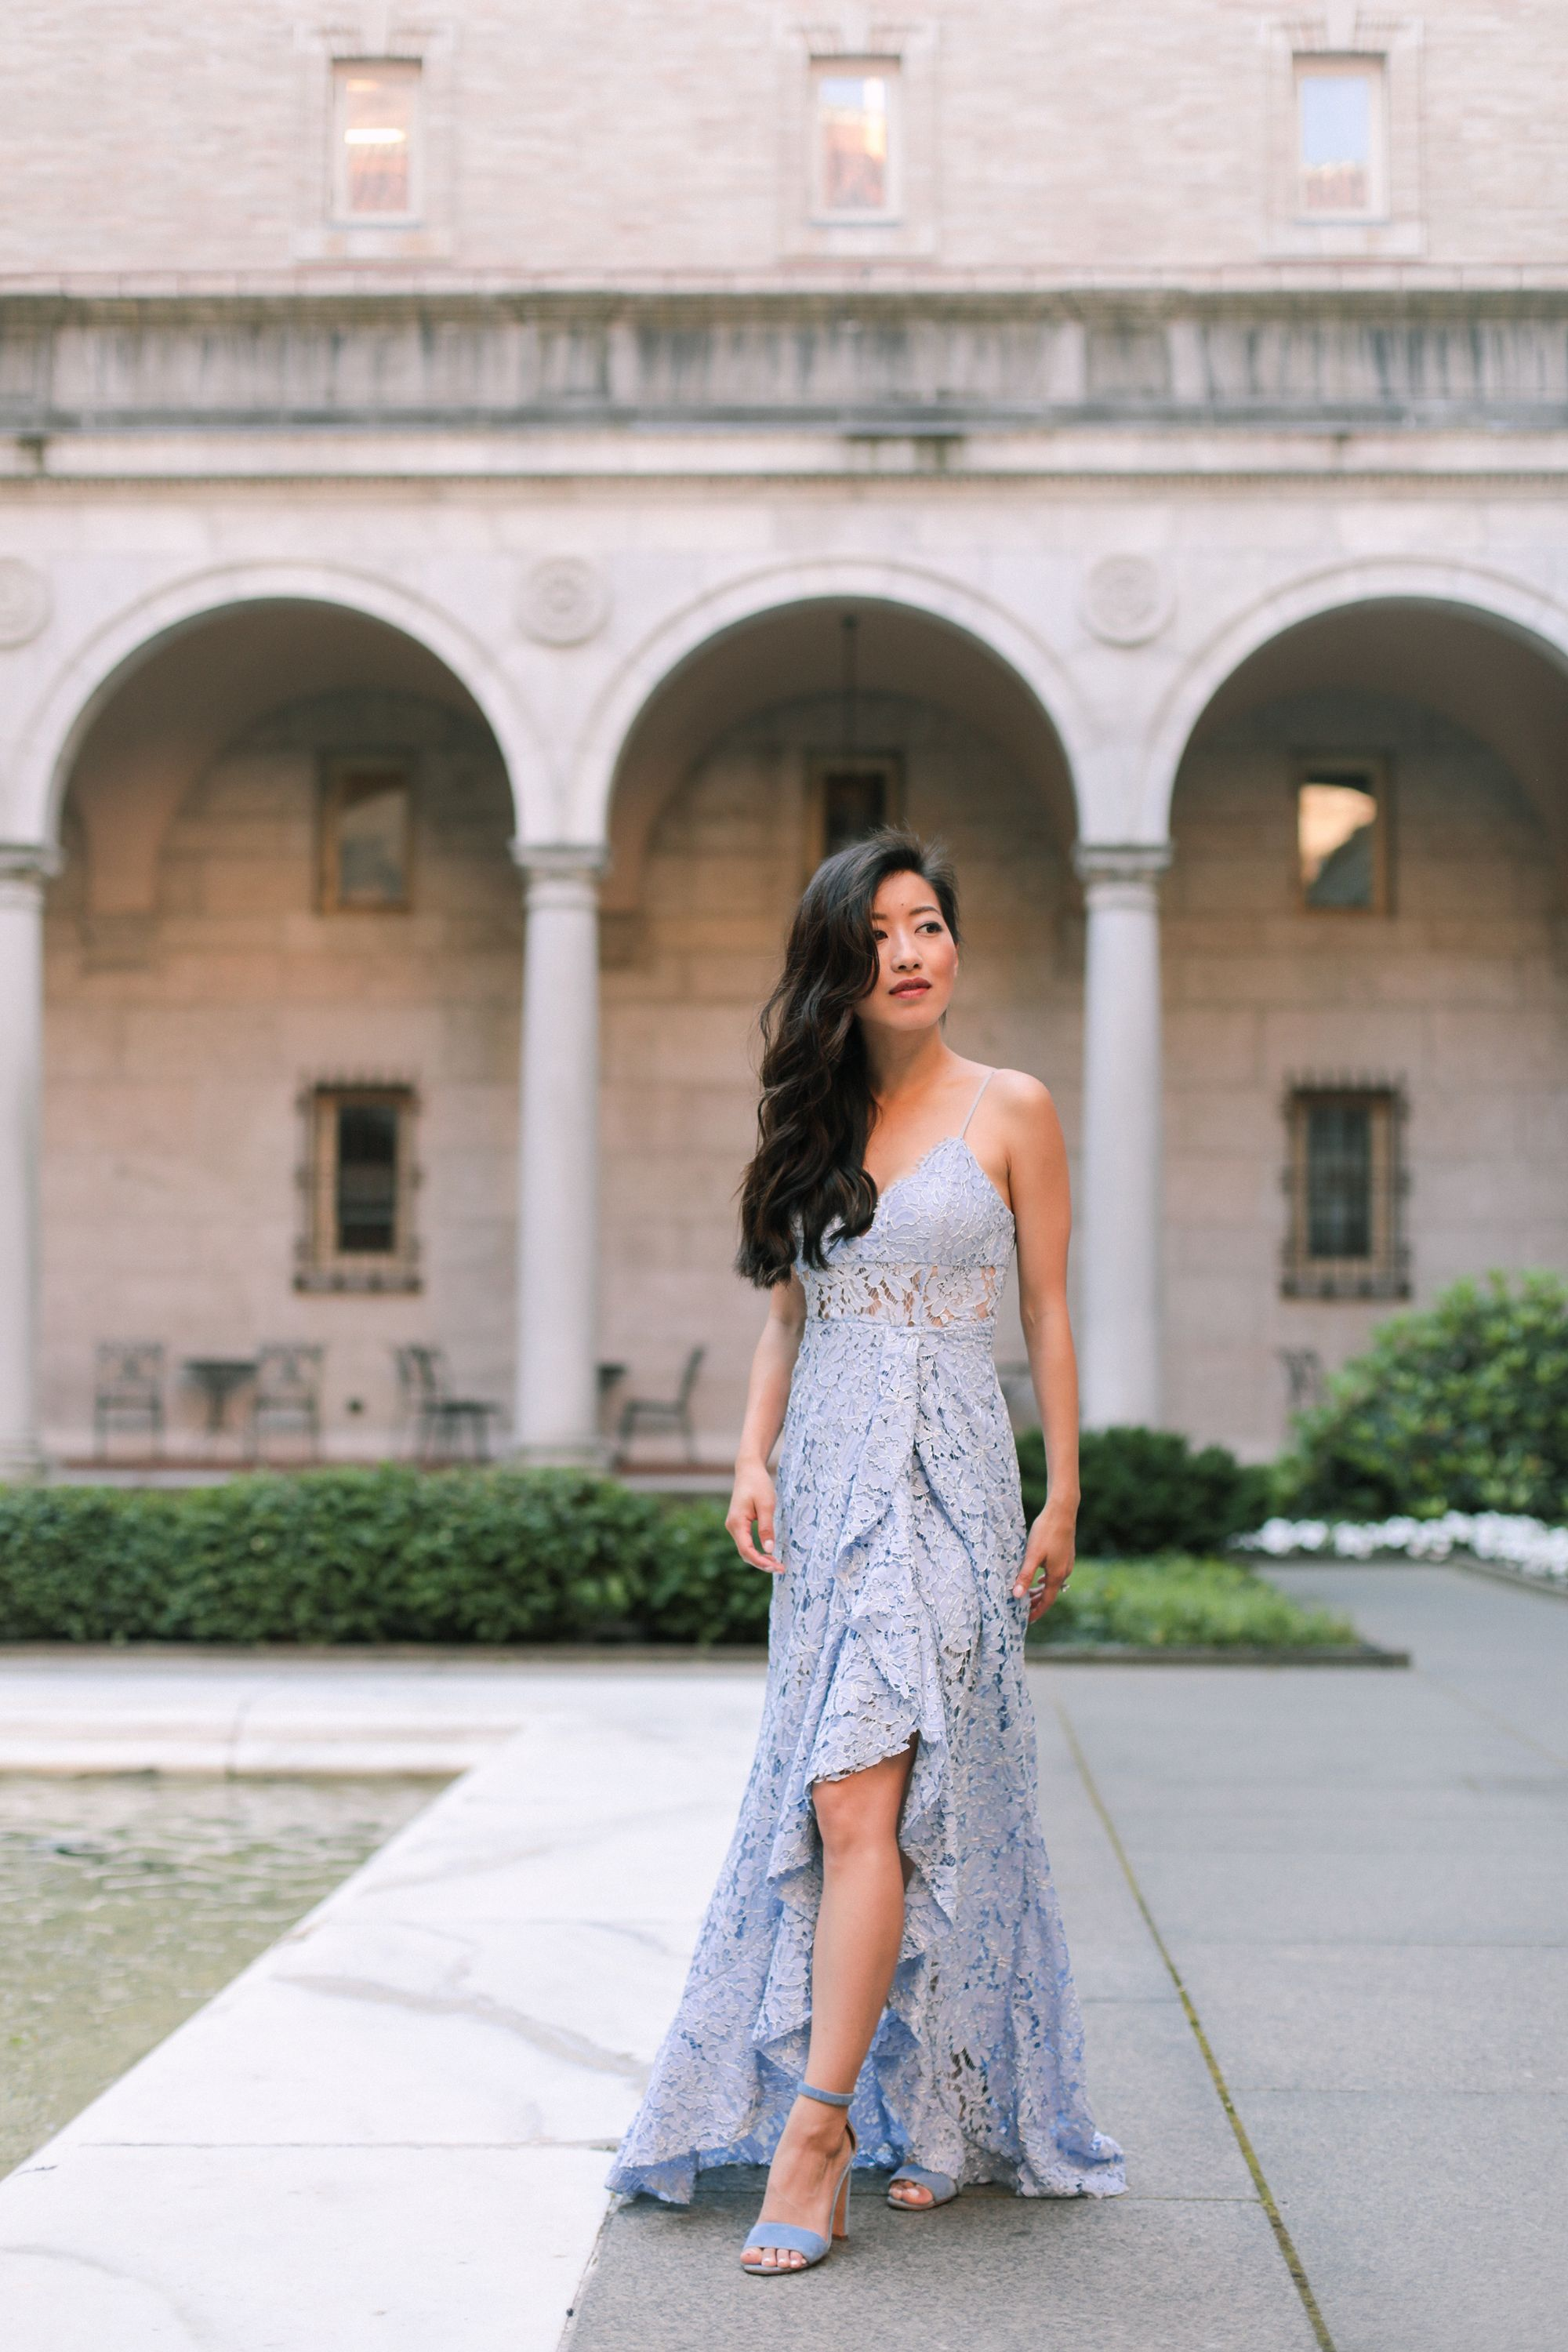 Wedding Anniversary Family Photos At Boston Public Library Wedding Guest Outfit Petite Evening Dresses Black Tie Wedding Guests [ 3000 x 2000 Pixel ]